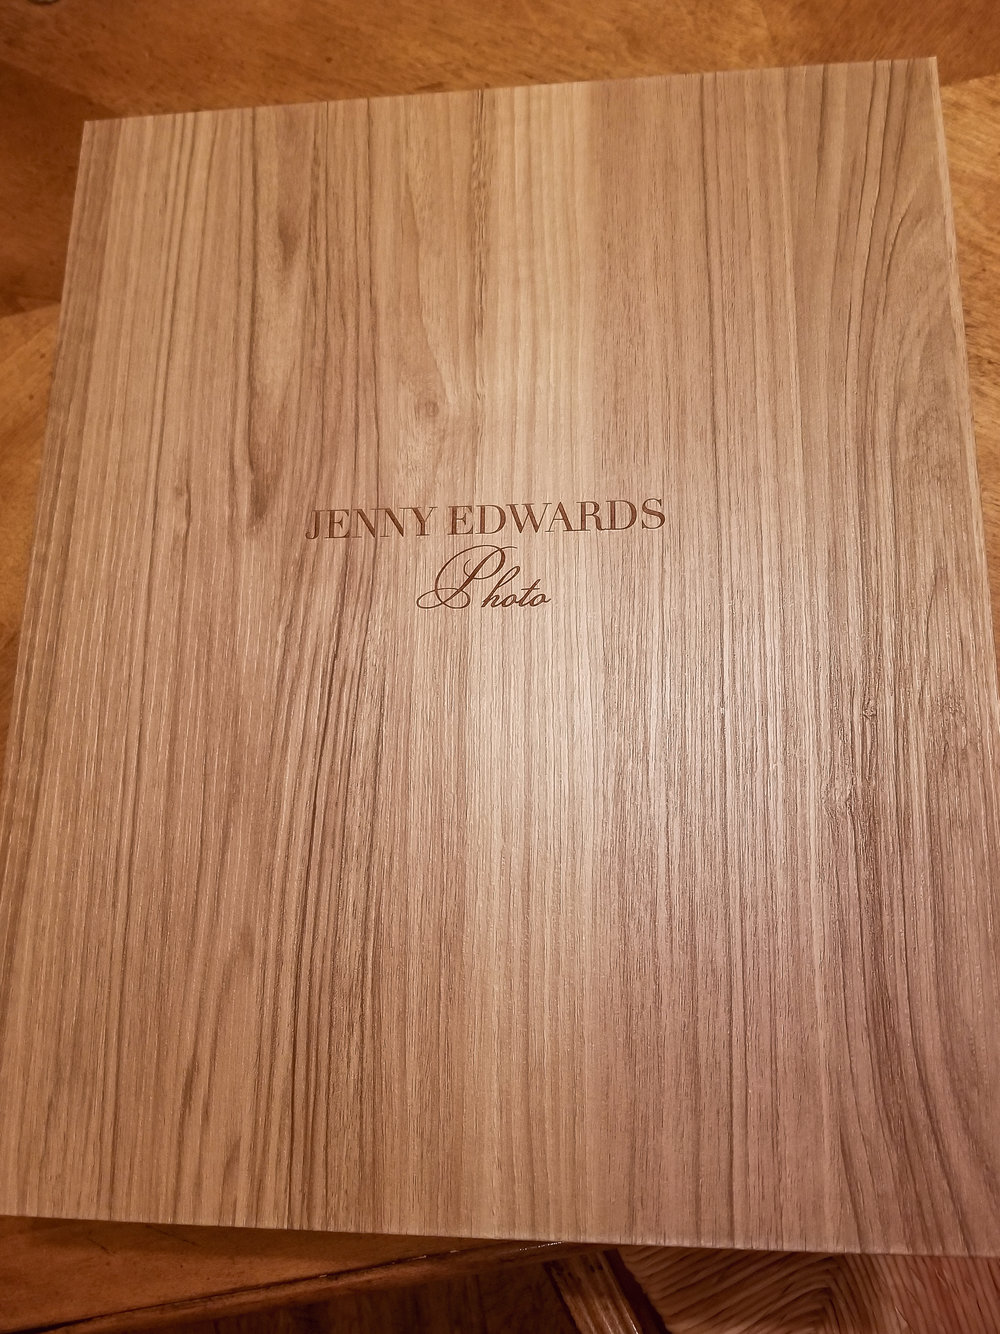 amarillo's premiere portrait photographer jenny edwards photo offers luxury products like this beautiful woodgrain box to house your leather portfolio